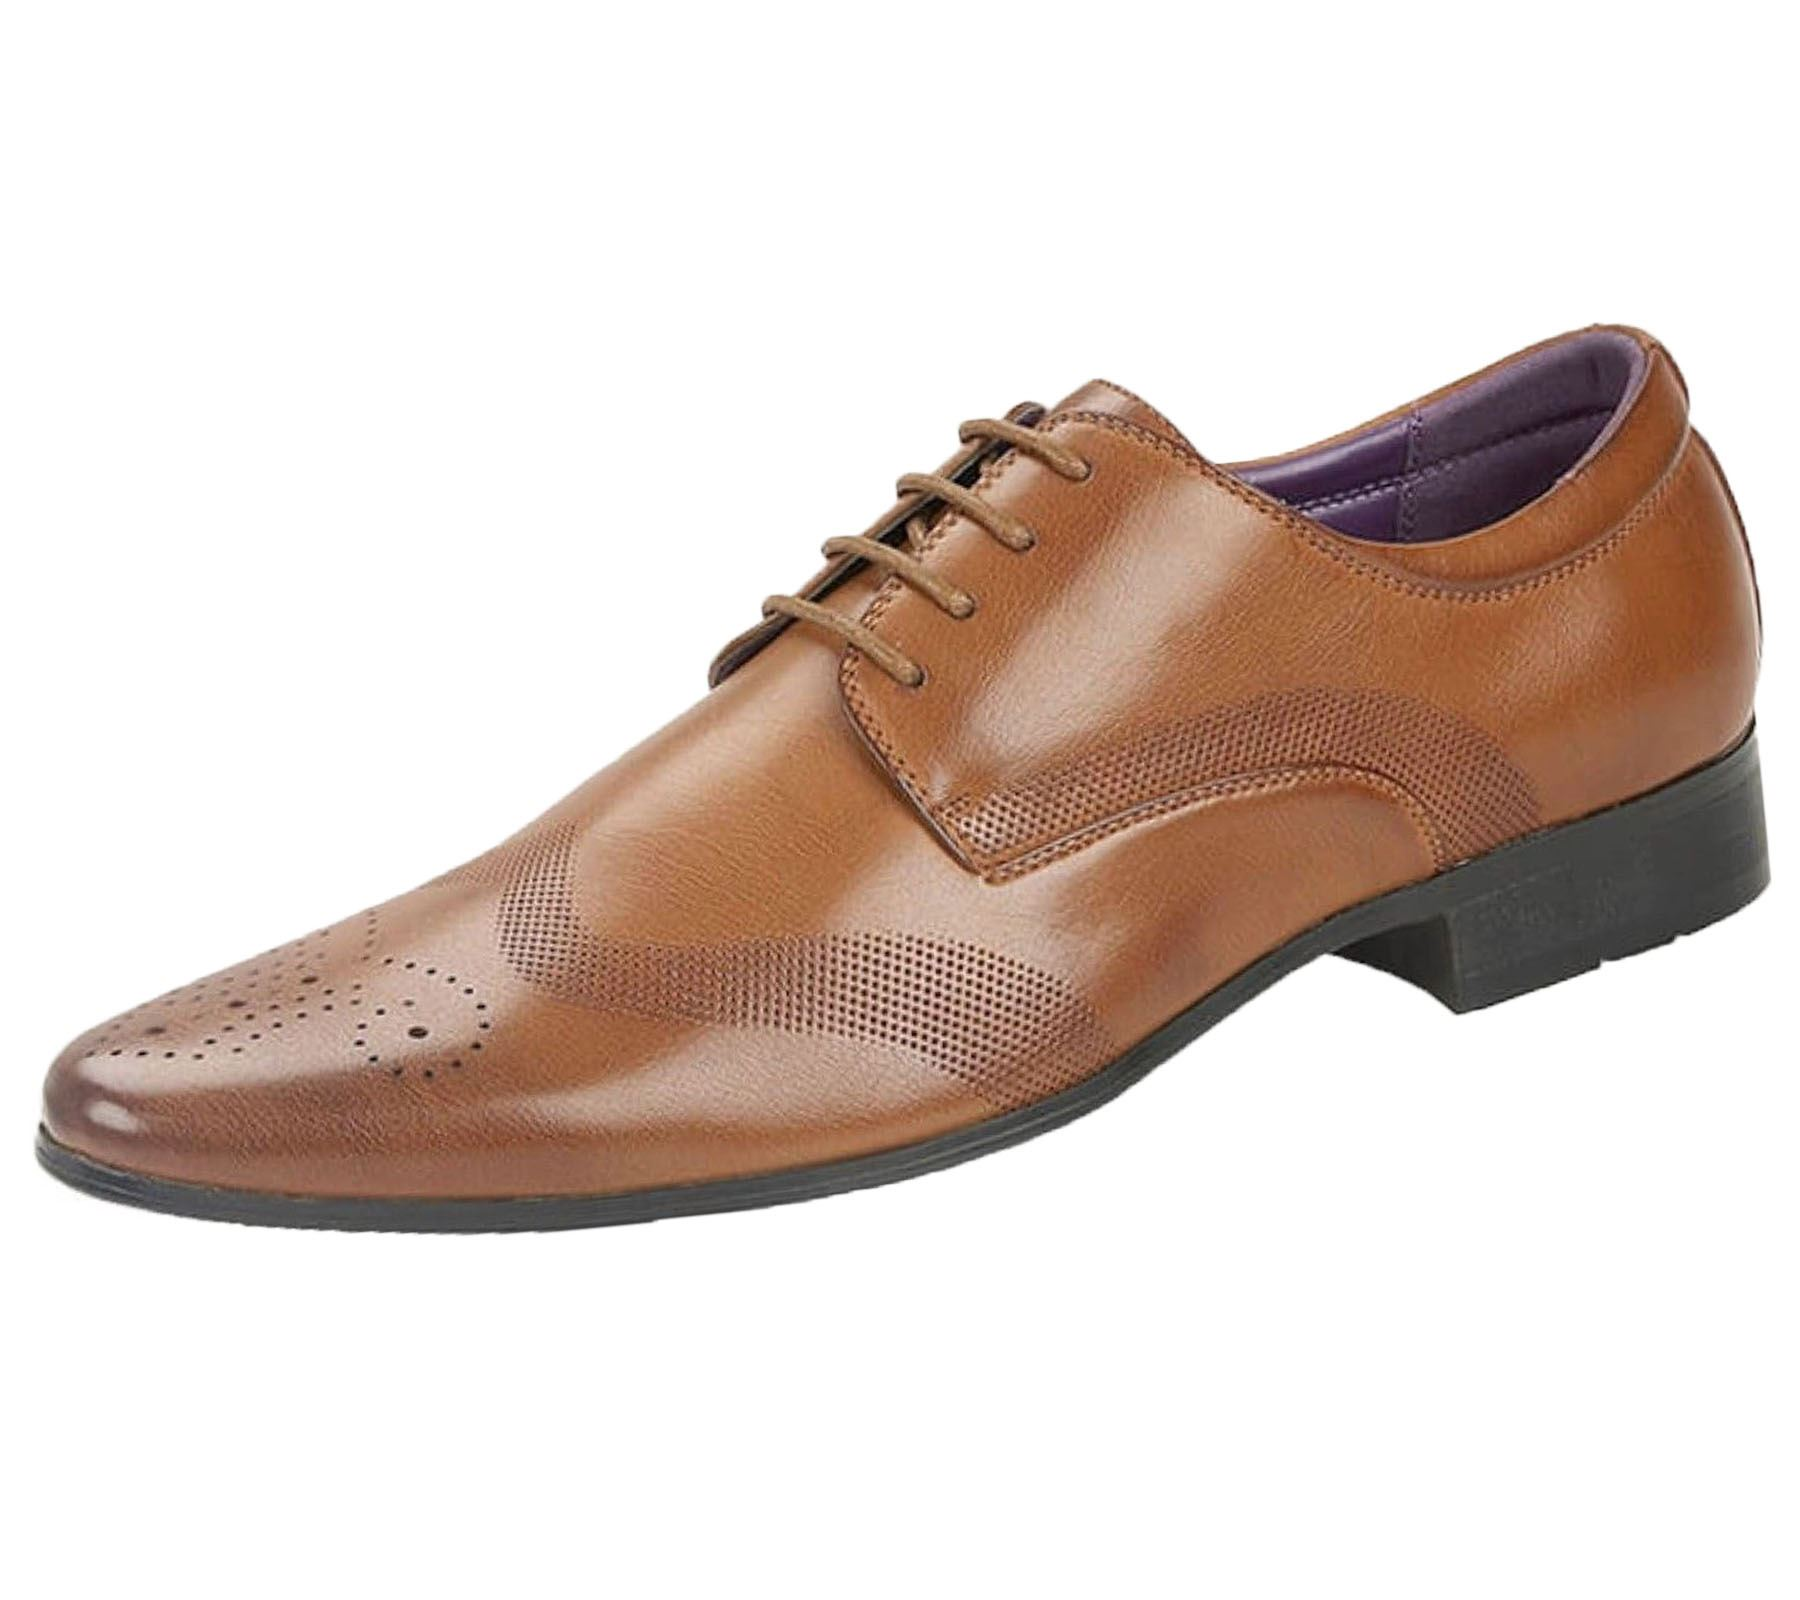 Mens-Brogues-Shoes-Office-Wedding-Formal-Smart-Dress-Shoes-New-Size miniatura 17